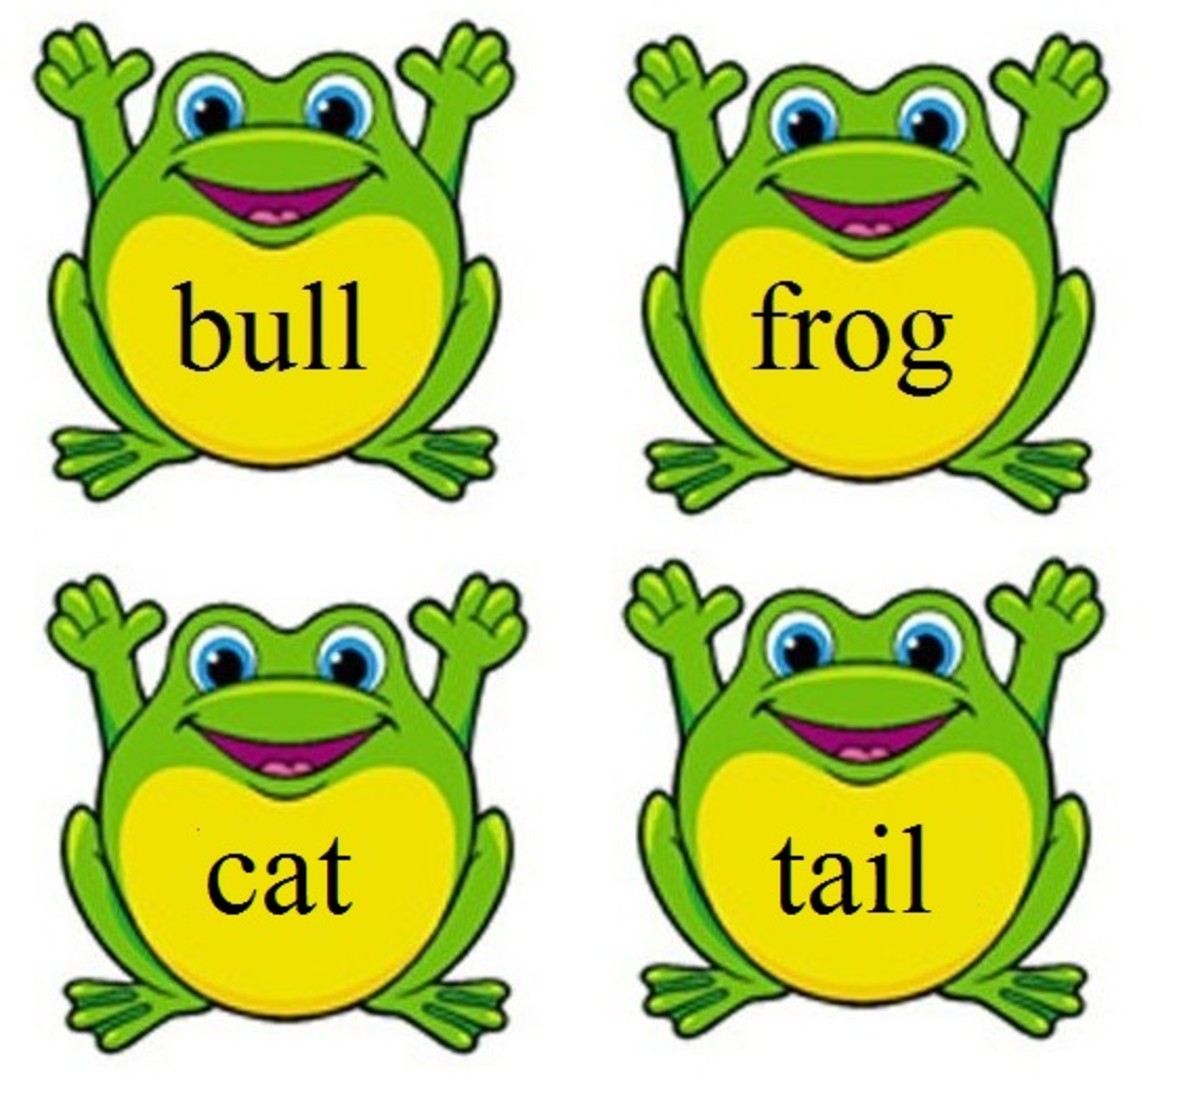 Put pairs of frog cards together to form compound words. Use these compound words to describe your observations down by the frog pond.